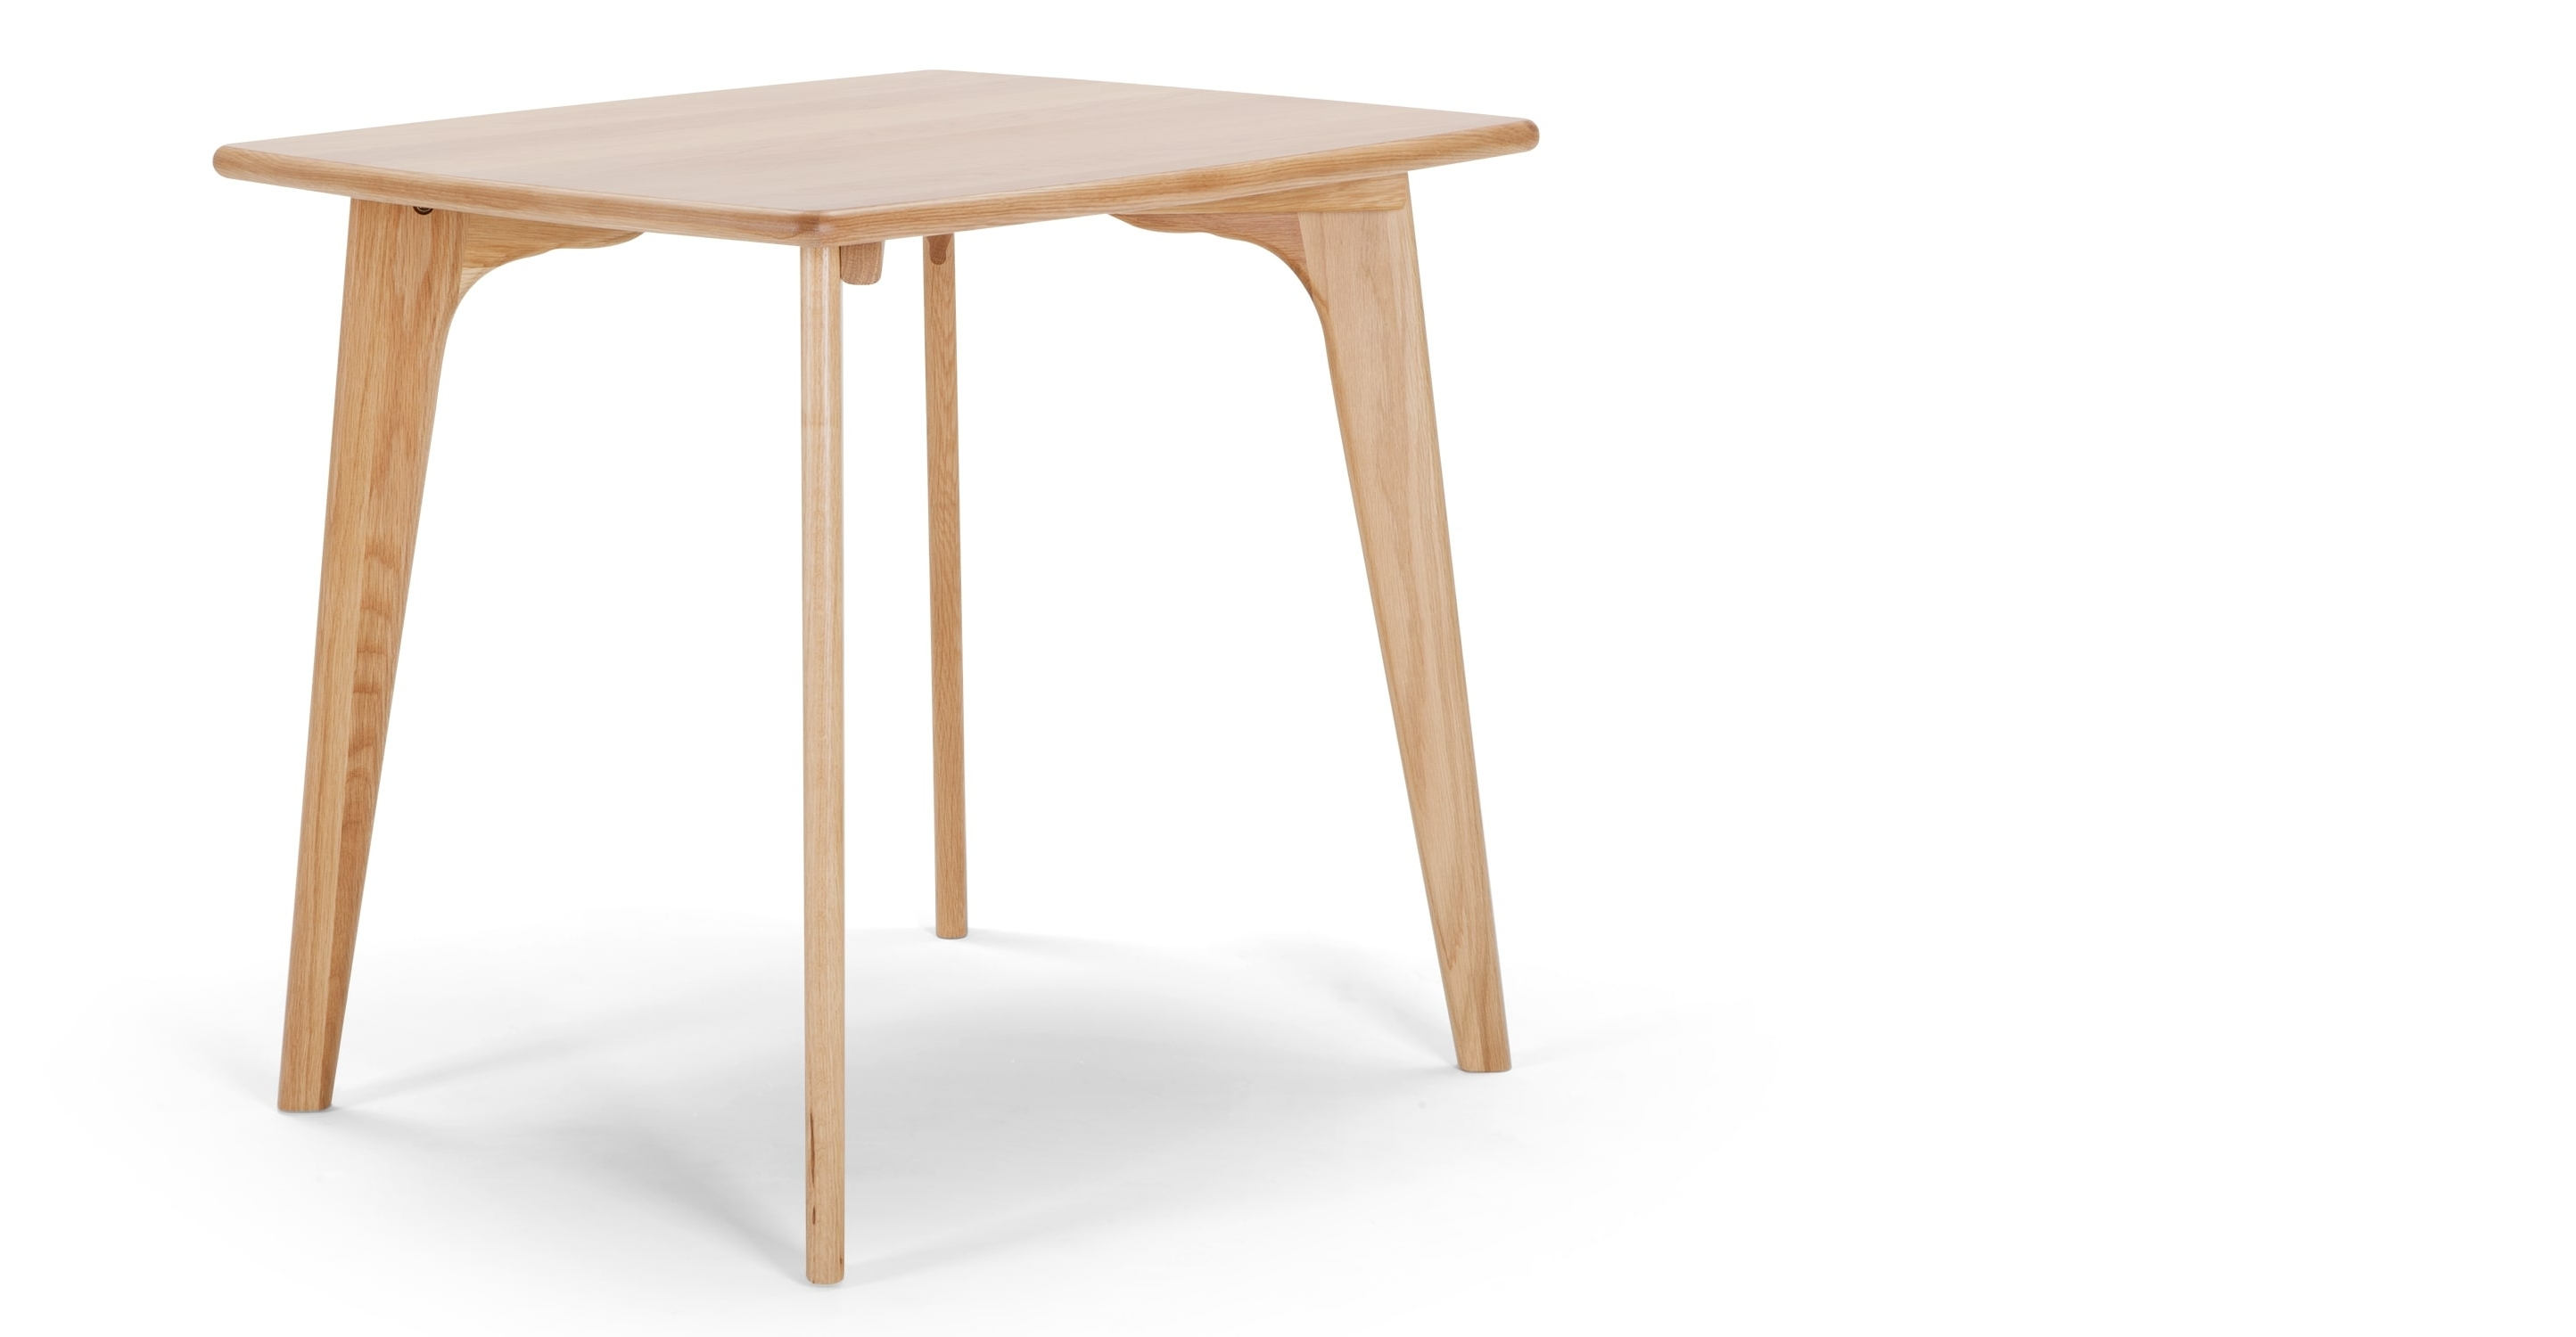 Compact Dining Tables Inside Recent Fjord Compact Dining Table, Oak • Sofas Etc (View 8 of 25)